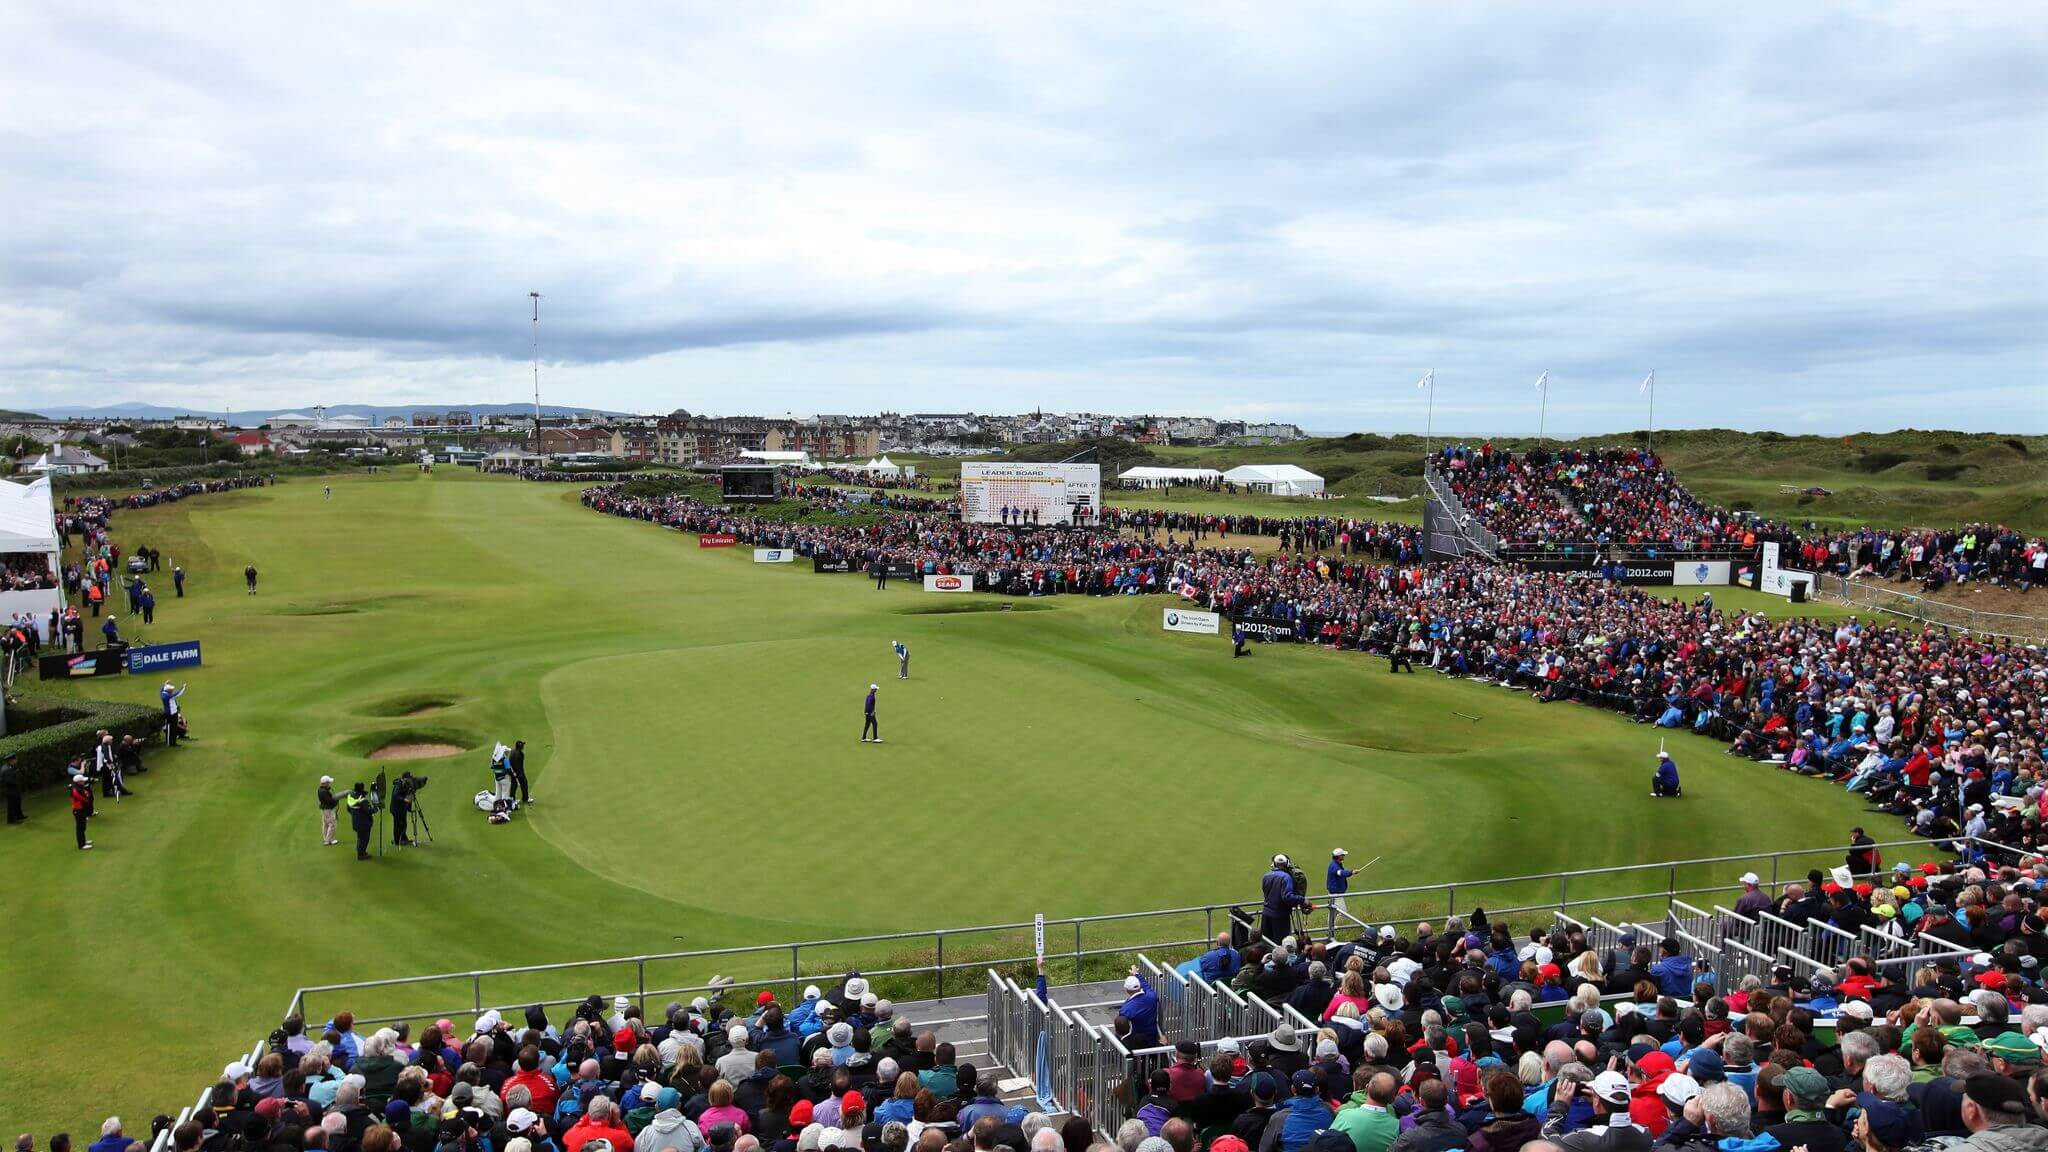 THE OPEN 2021 - THE 149TH OPEN